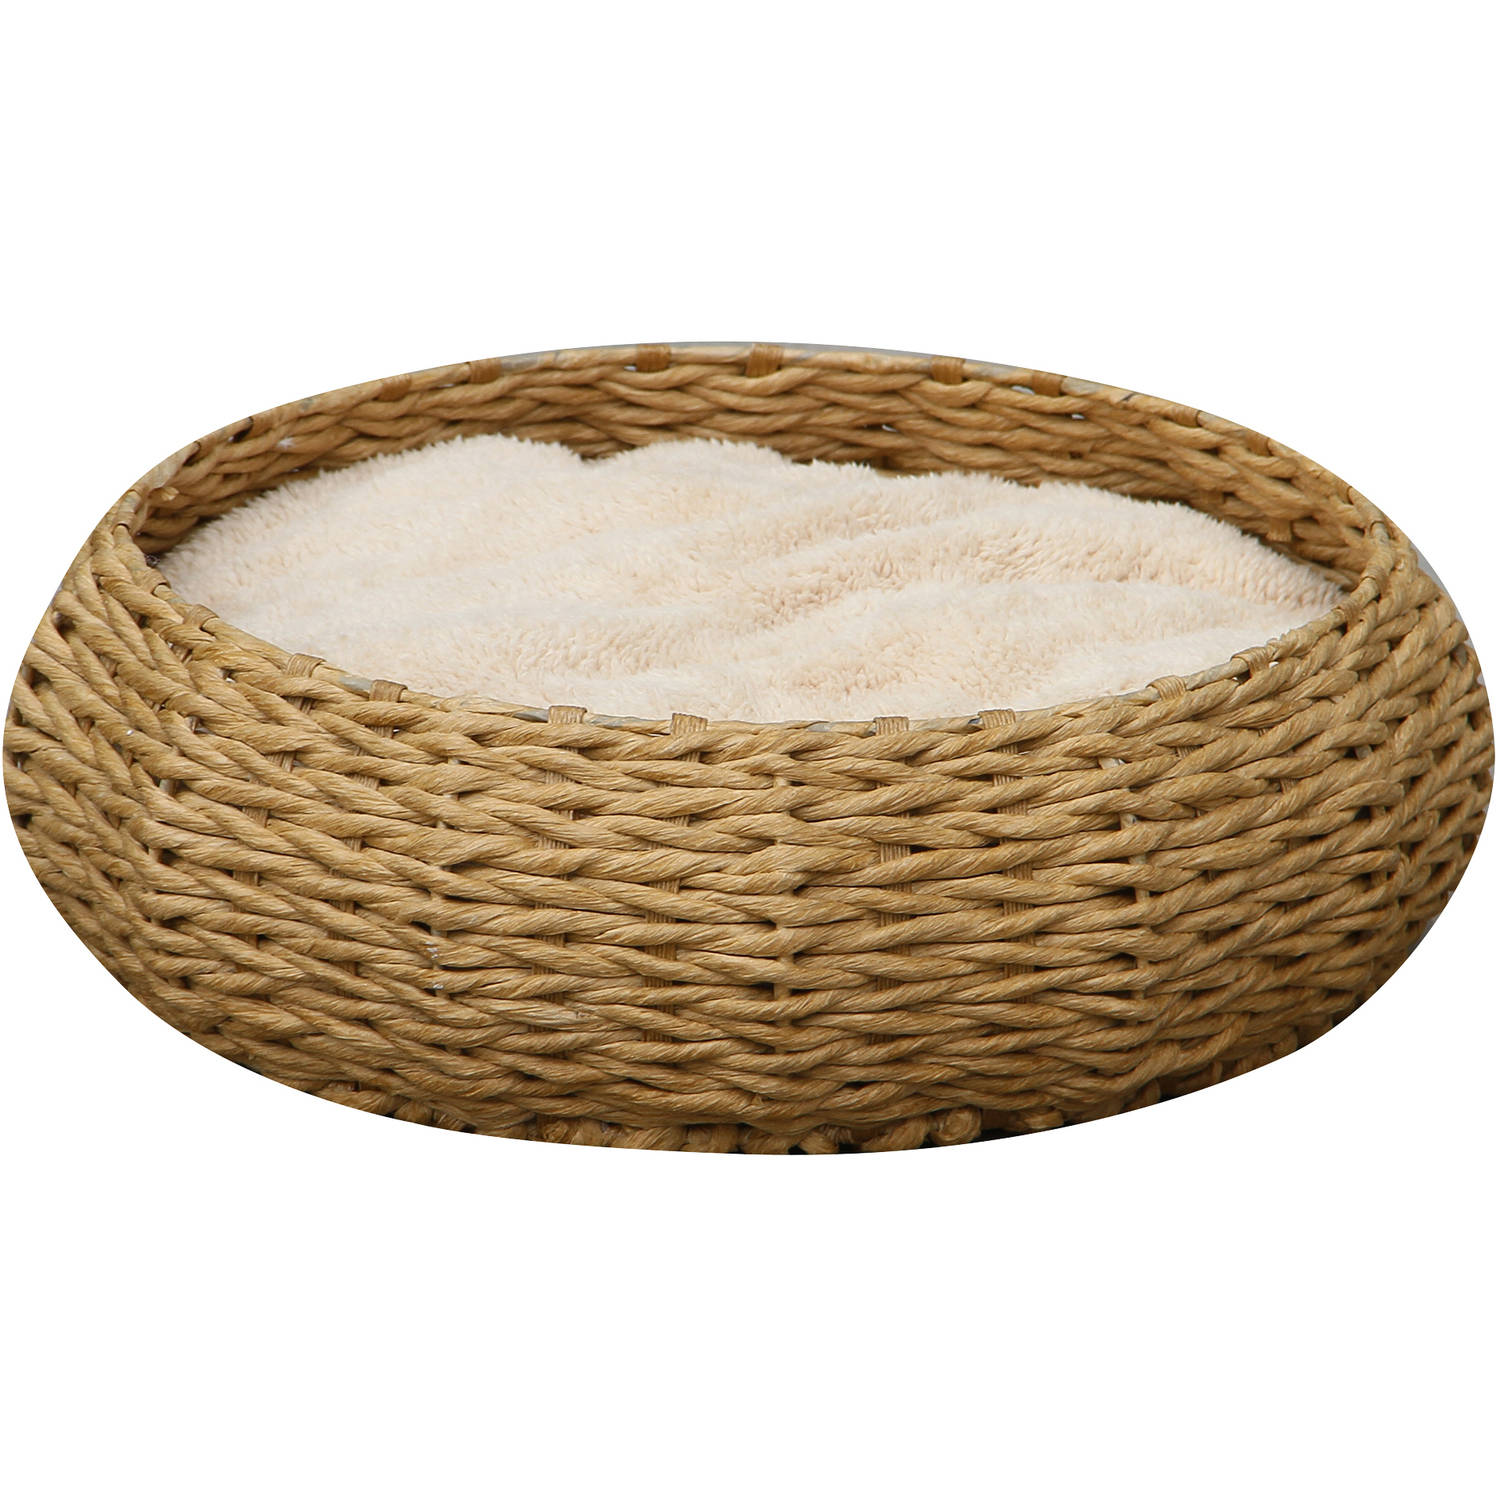 Petpals Group Paper Rope Round Bed with Pillow